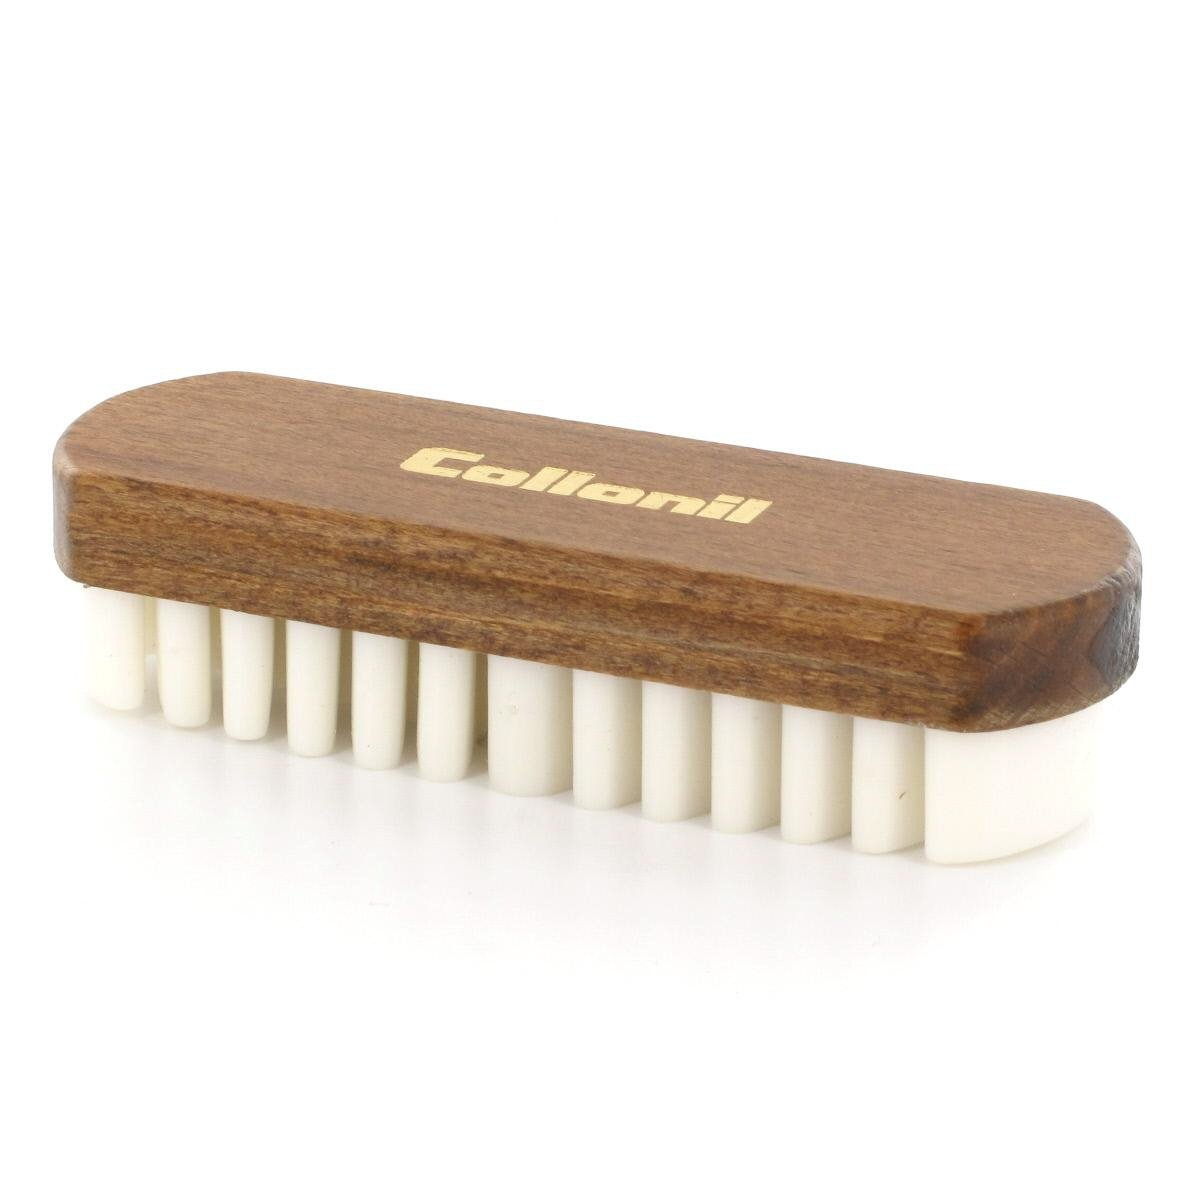 Collonil Suede Nubuck Brush 5'' Cleans & Renews Texture on Shoes, Handbags, & Boots